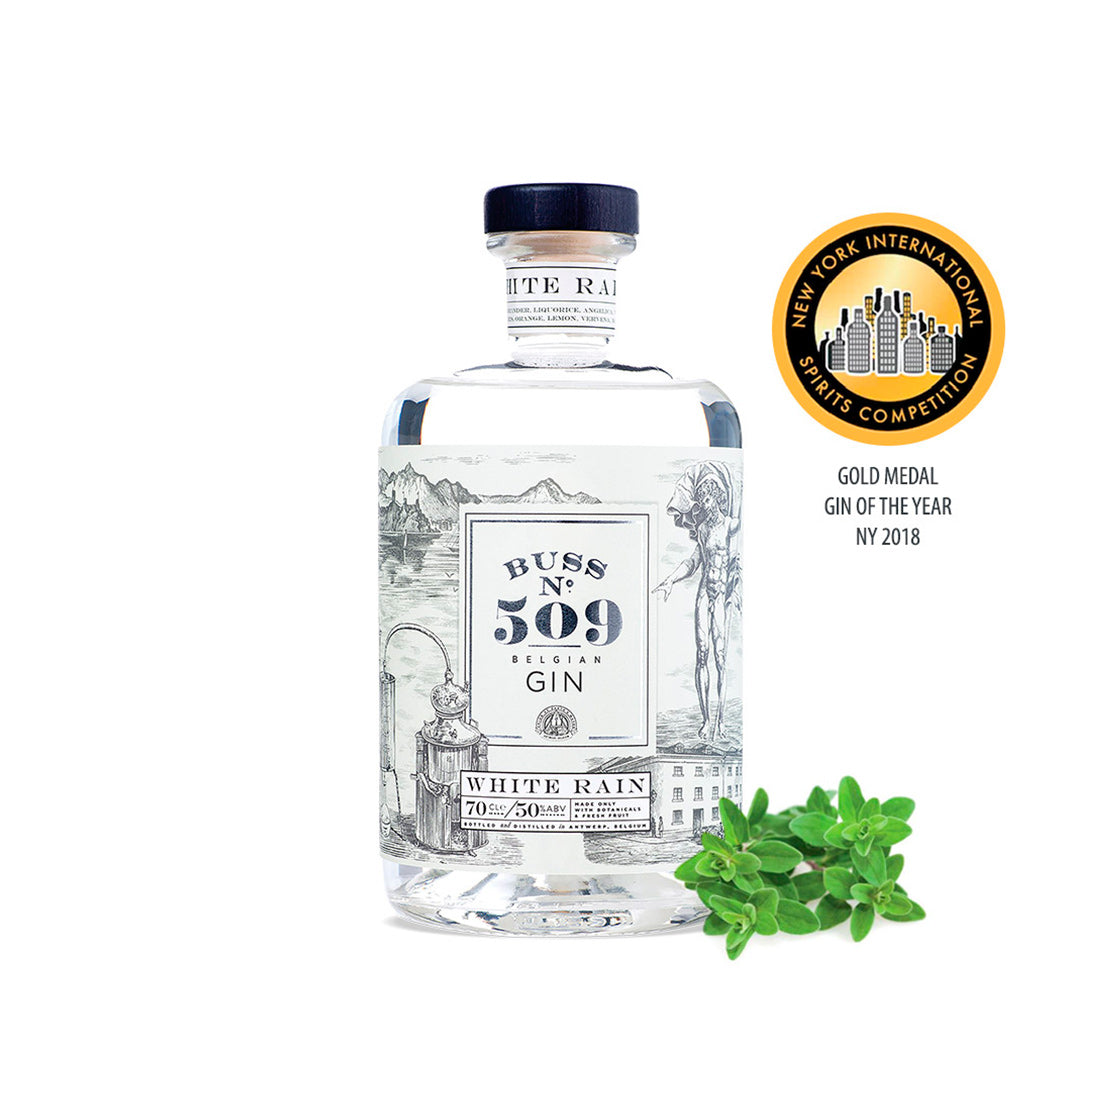 Buss No 509 White Rain Gin, 700ml